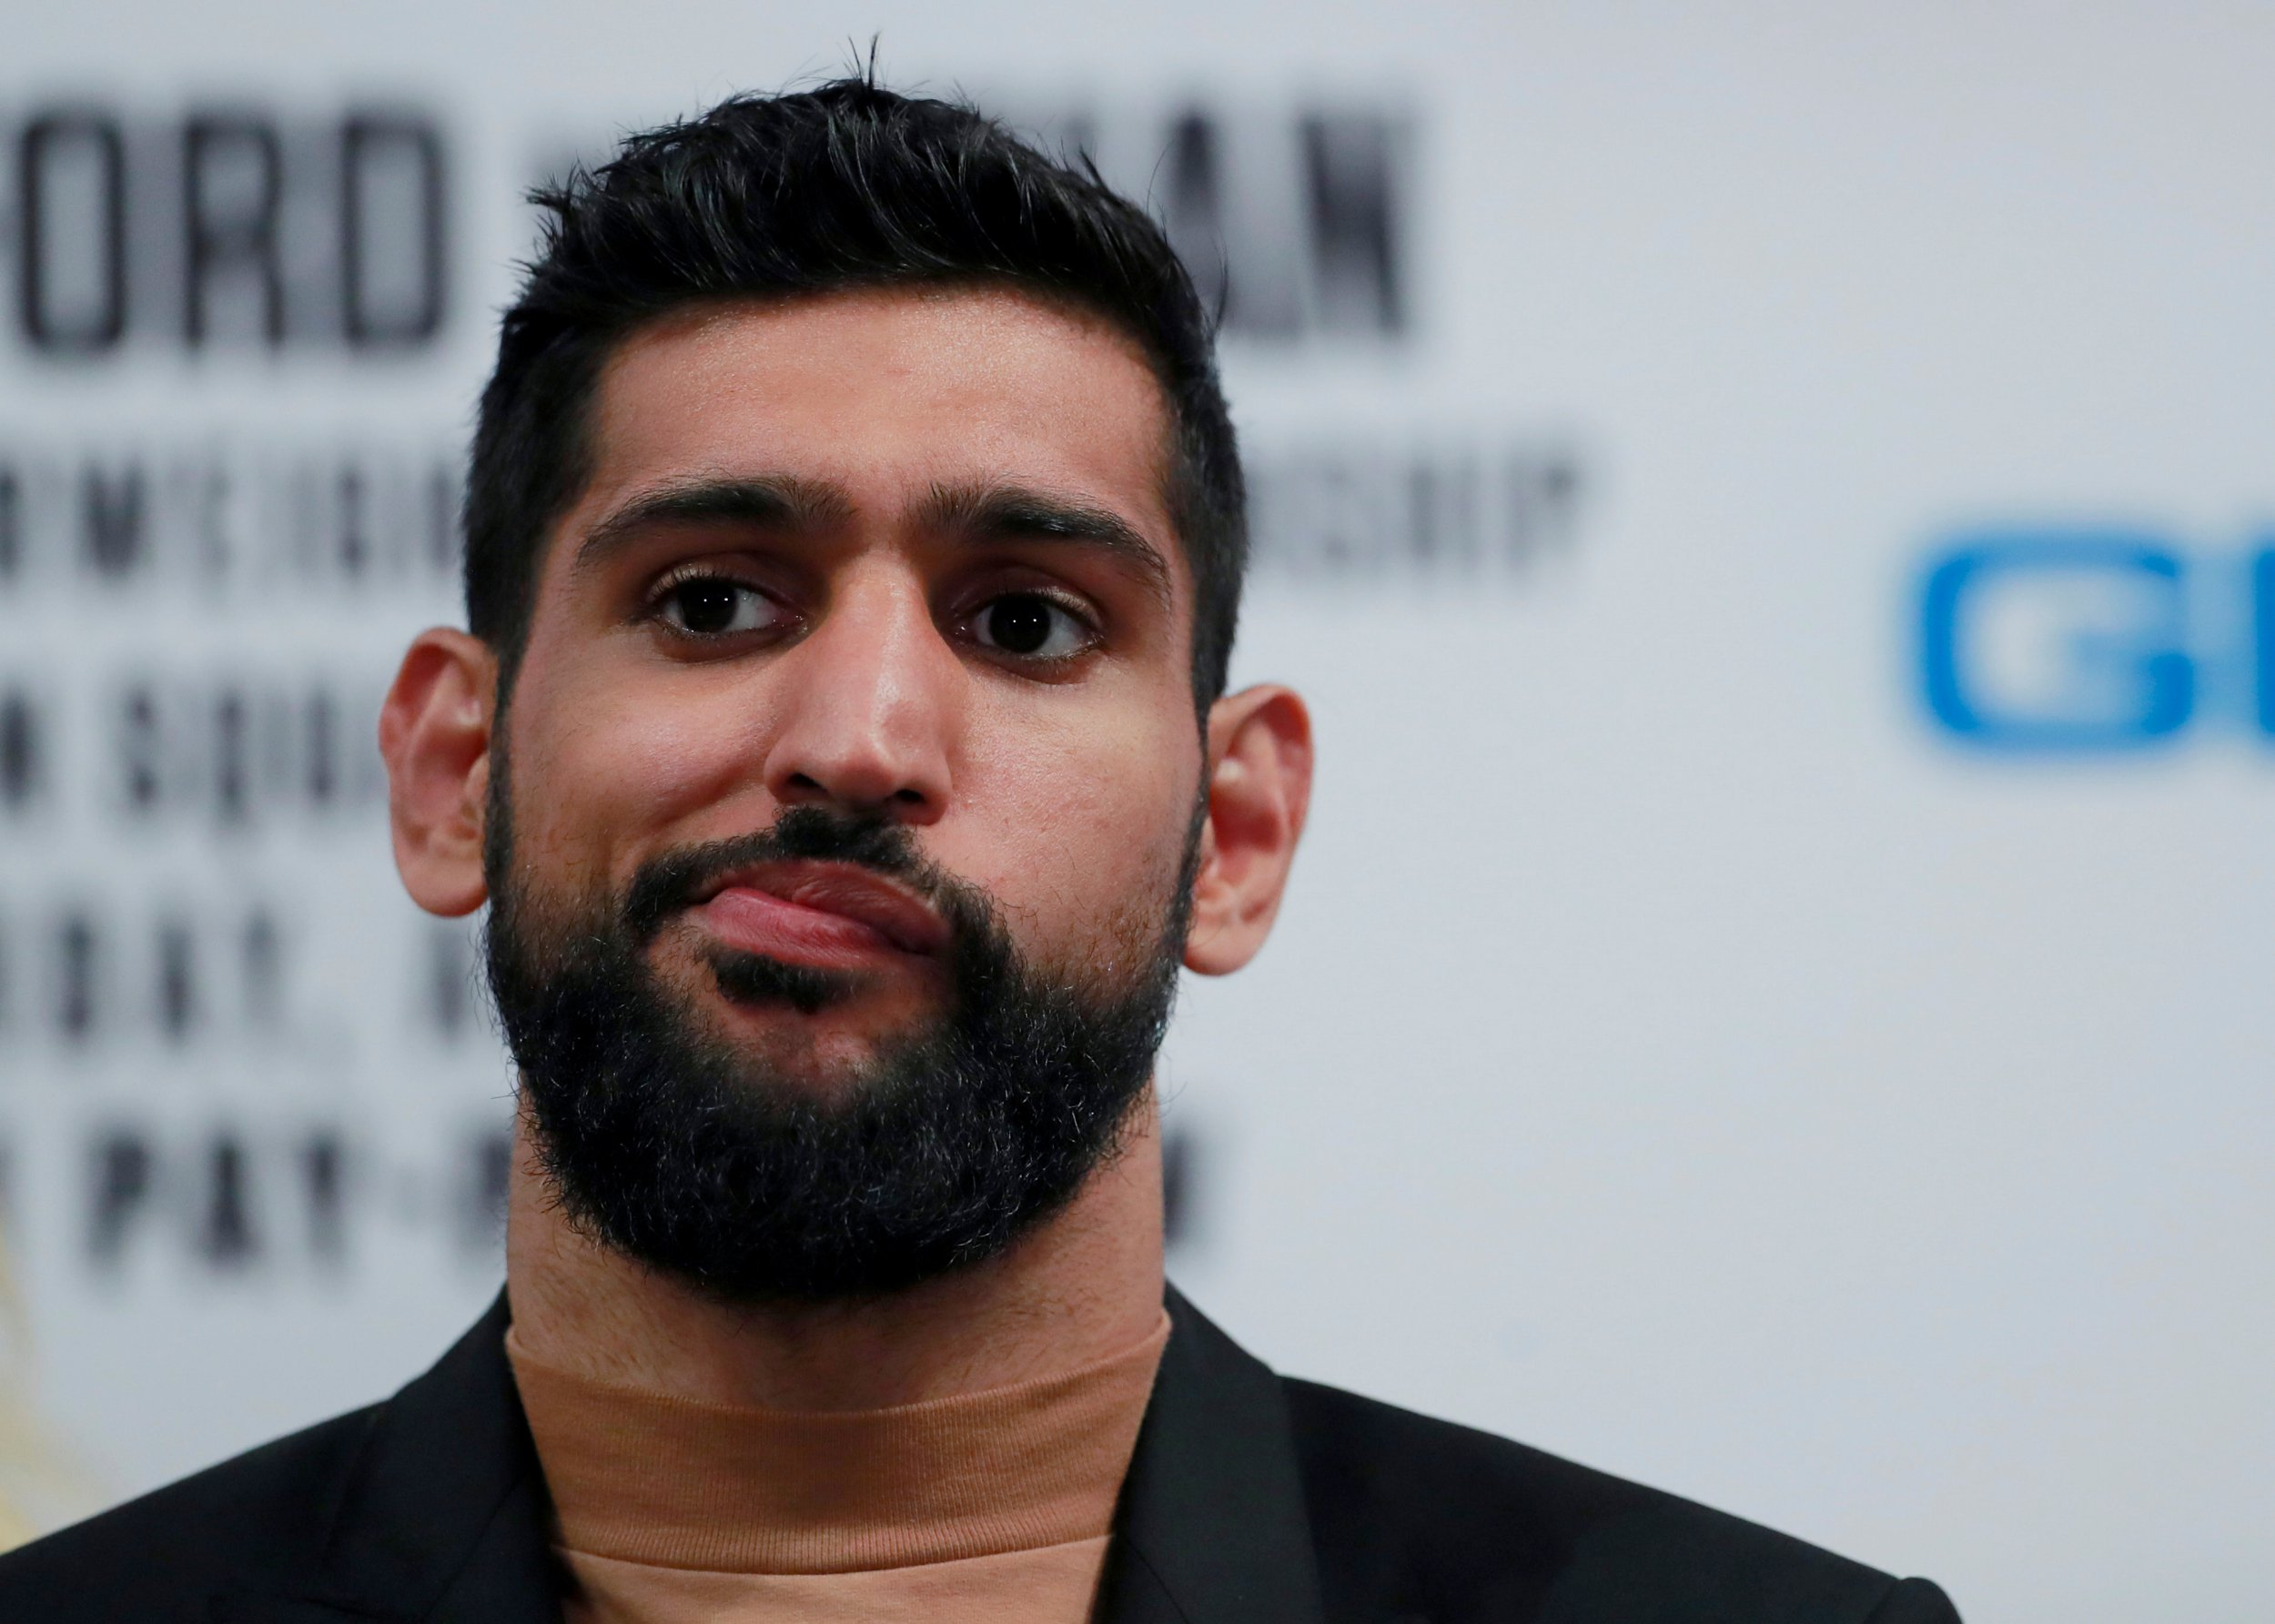 Amir Khan's wife takes on camp manager role for Terence Crawford preparations